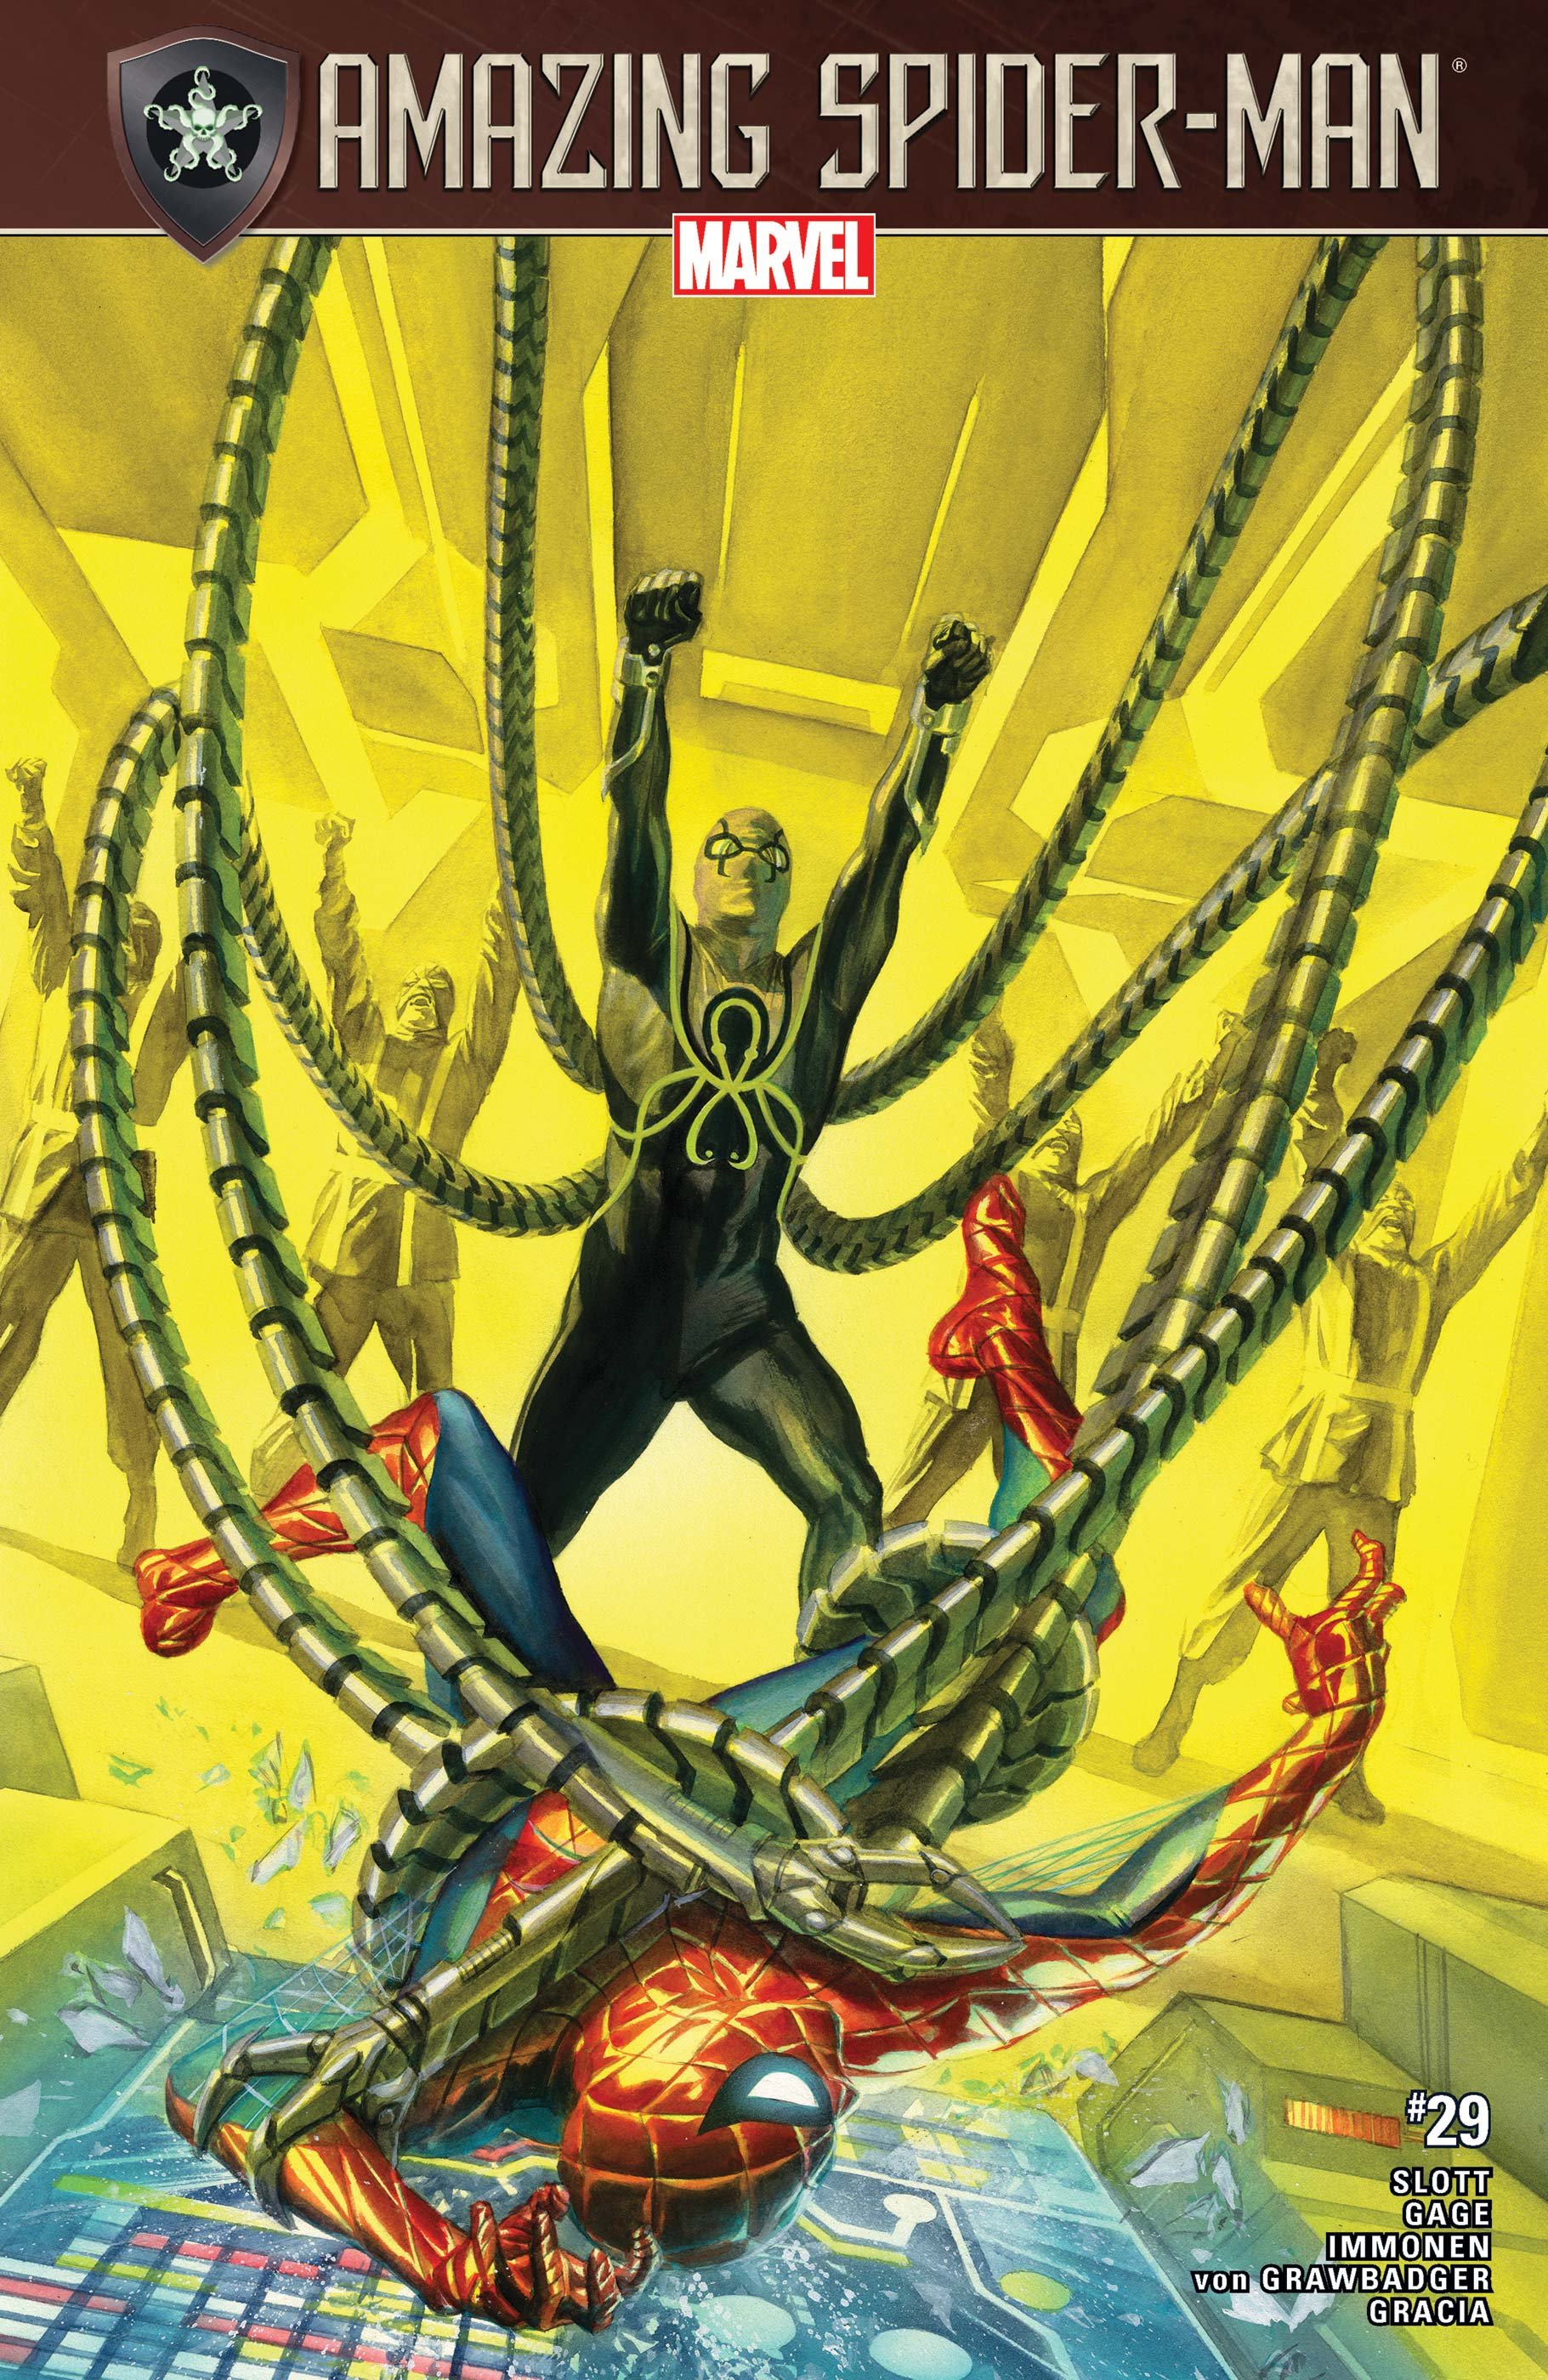 The Amazing Spider-Man (2015) #29